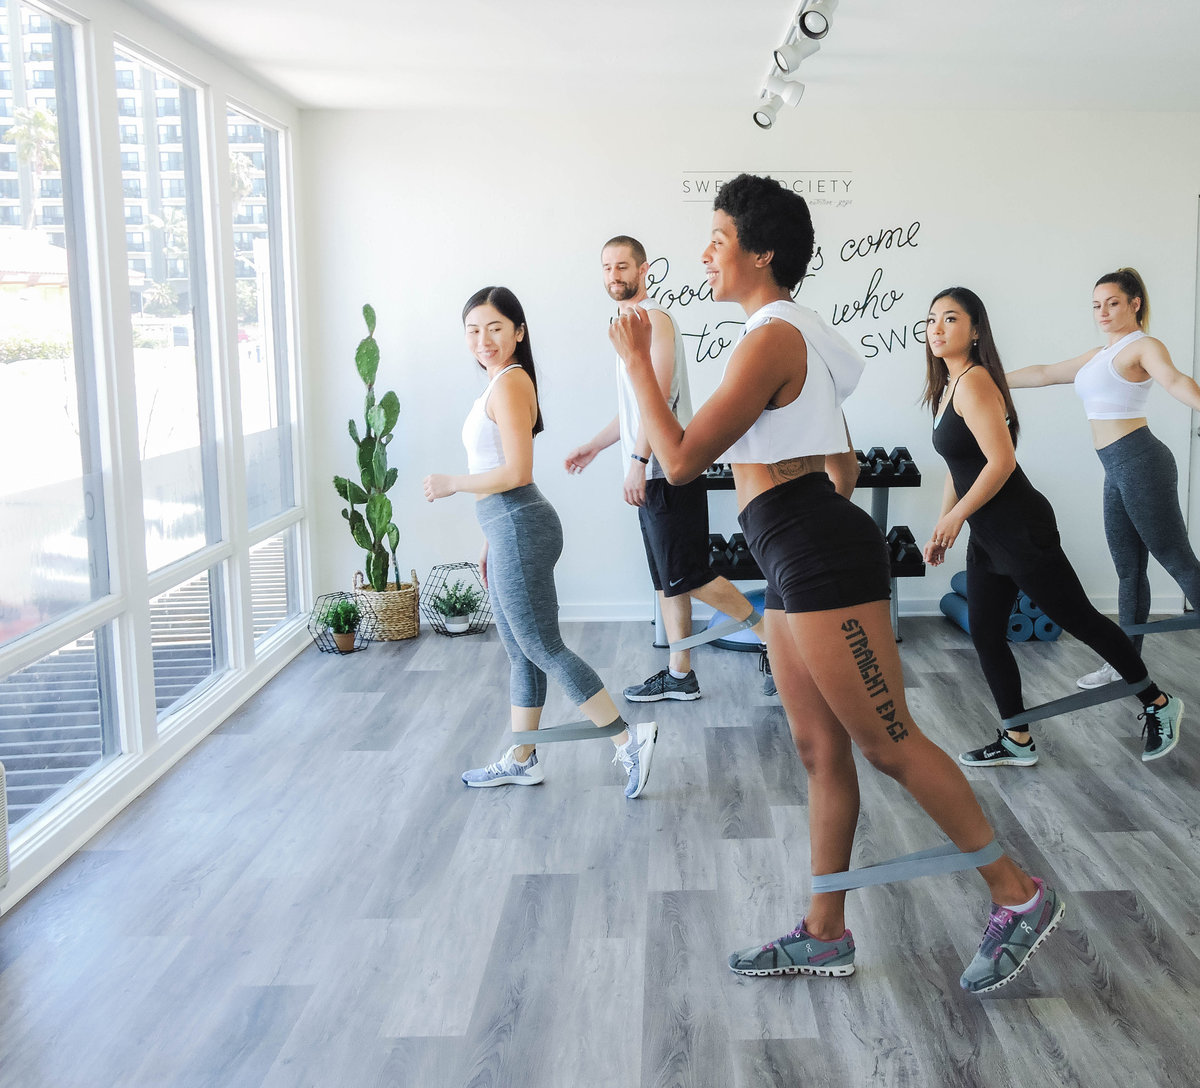 Group fitness classes in San Diego